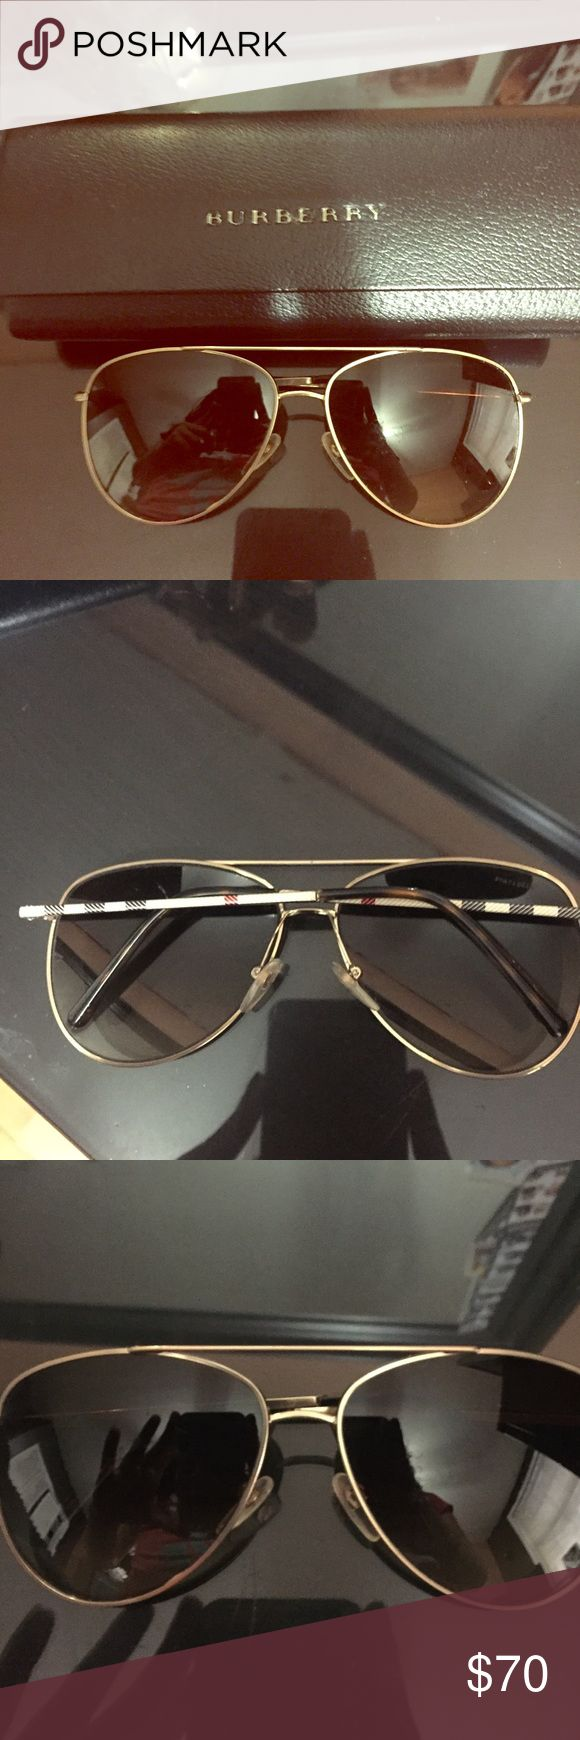 Burberry Gold Check Arm Women's Aviator Sunglasses Great sunglasses. Never wear. Original price is 210$. Some fine scratches(mostly dust particles) only shown with flash. Lenses can be replaced. No significant damage. Purchased years ago. May need to be adjusted to face by an Optician. Burberry Other